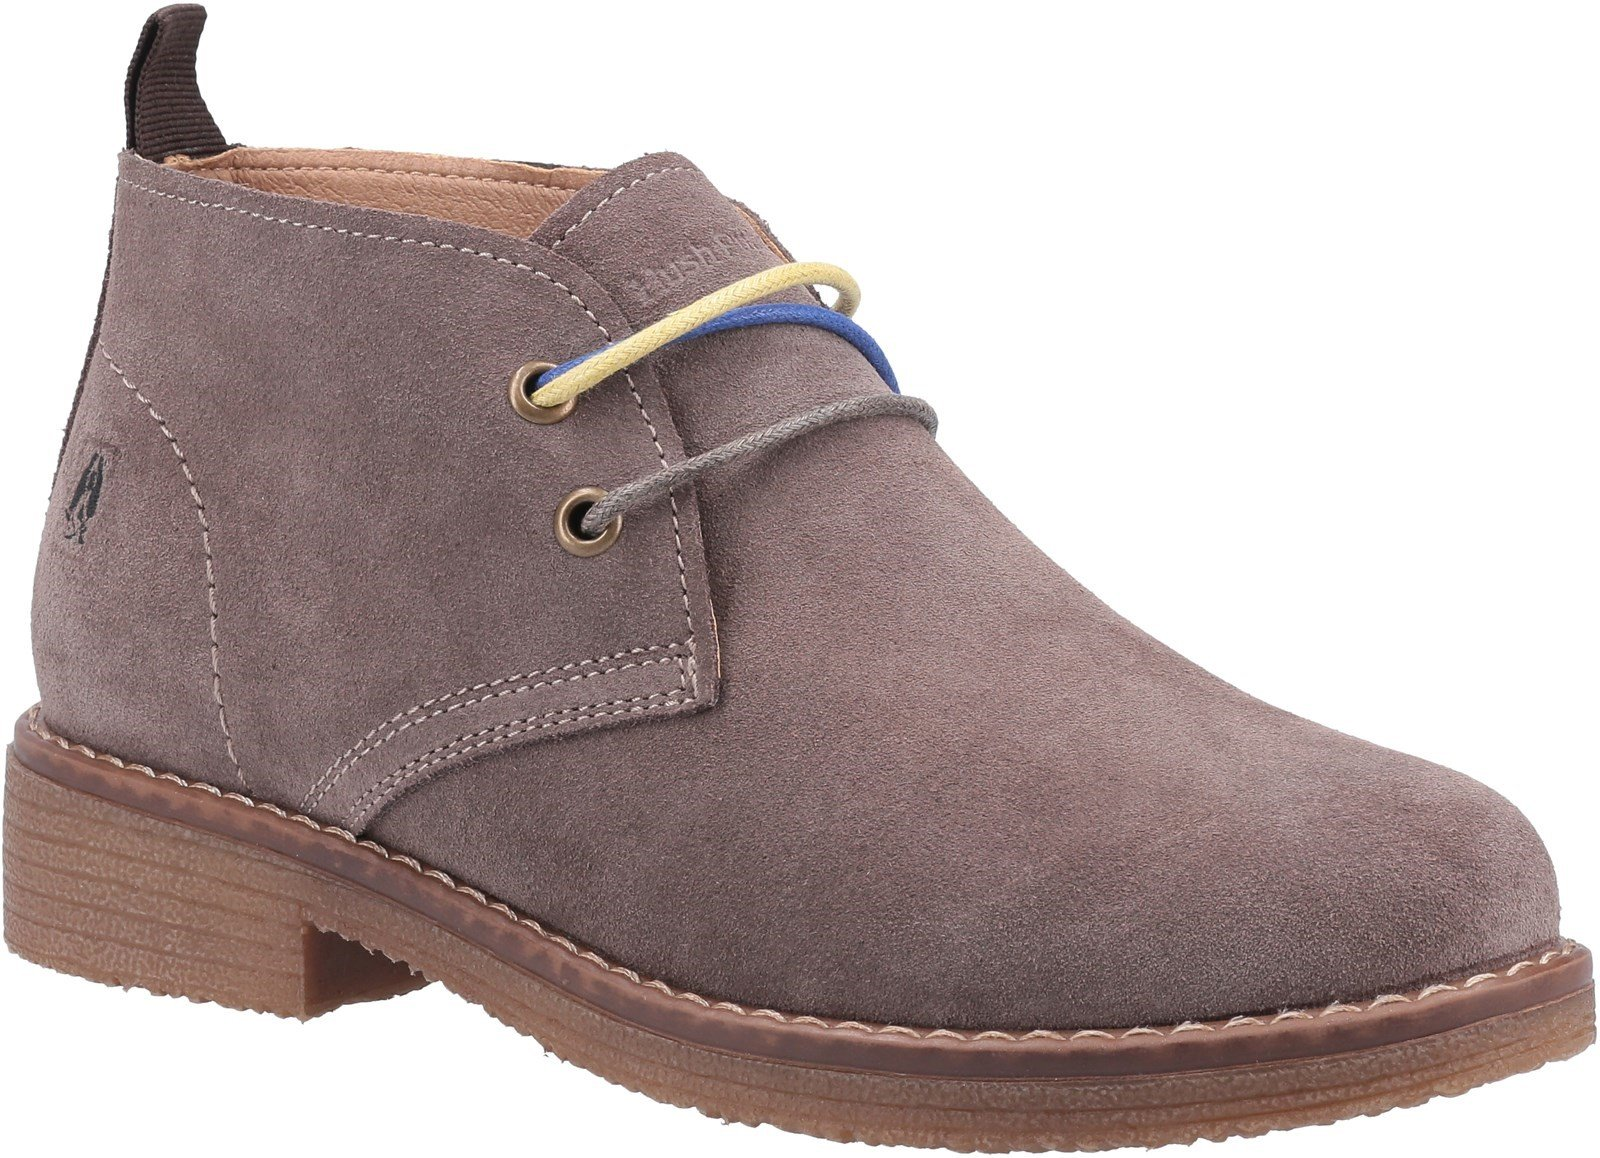 Hush Puppies Women's Marie Ankle Boots Various Colours 31951 - Taupe 3